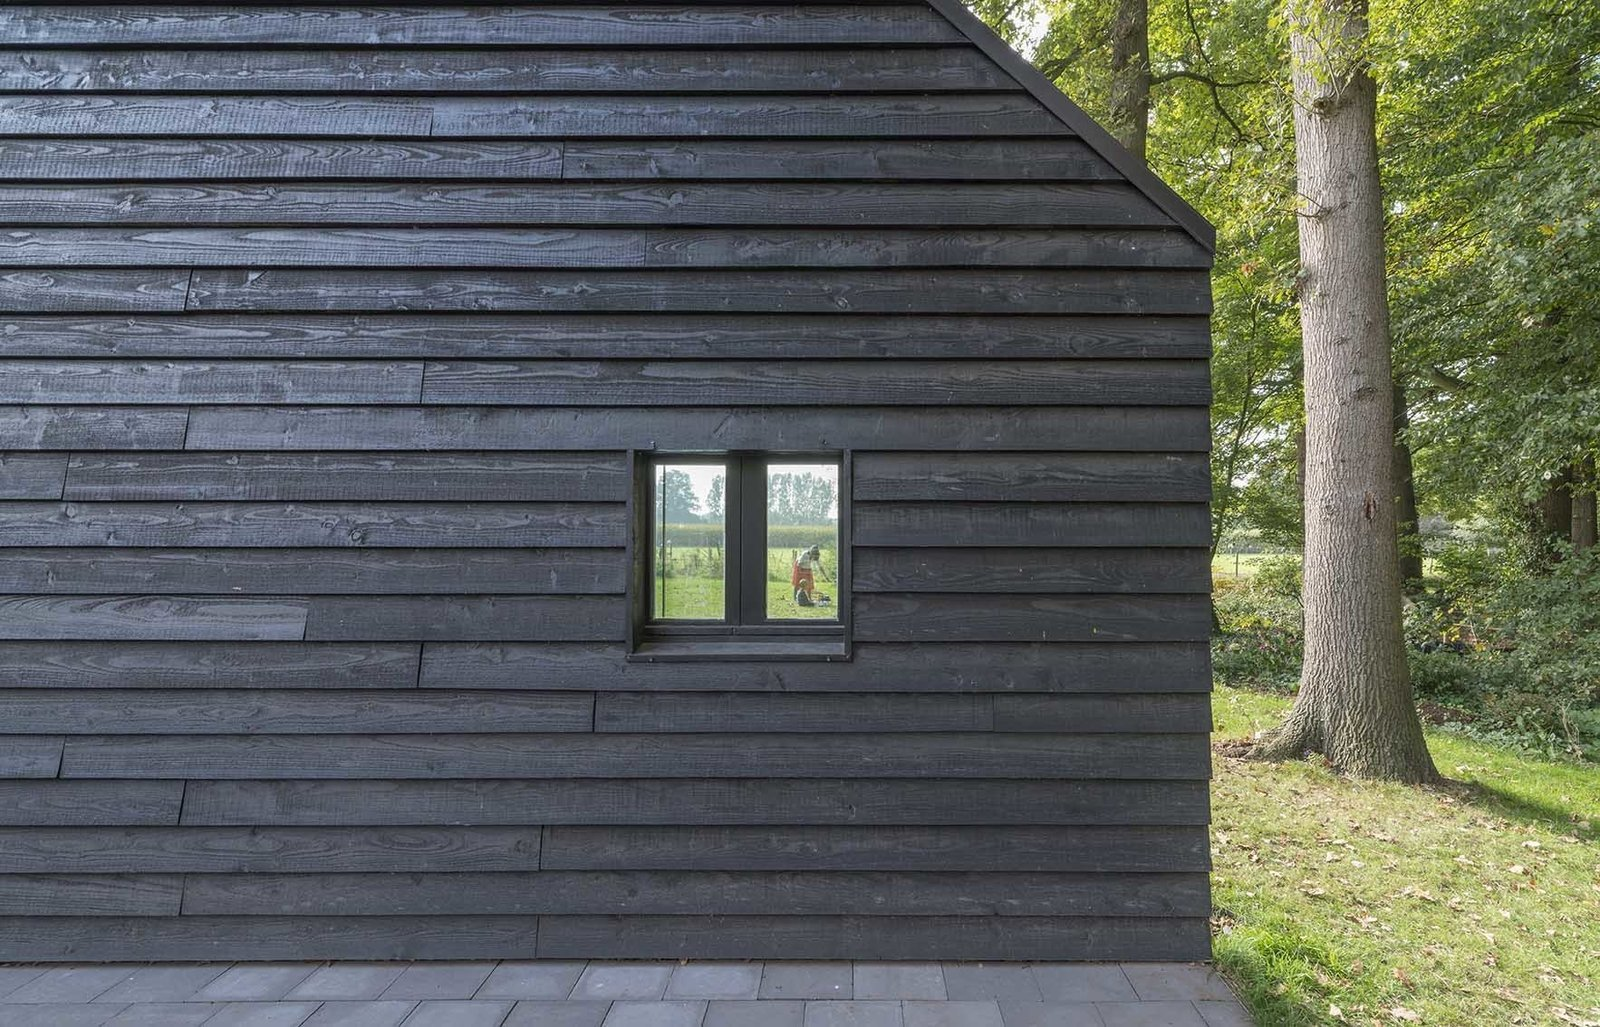 "In keeping with Scandinavian building traditions, locally sourced Douglas fir clads the exterior. ""The clients like the simplicity of [local] barns,"" Koolhaas says. The black paint also helps draw in heat, which is important in the region's cold climate.  Triangular House by Laura C. Mallonee"